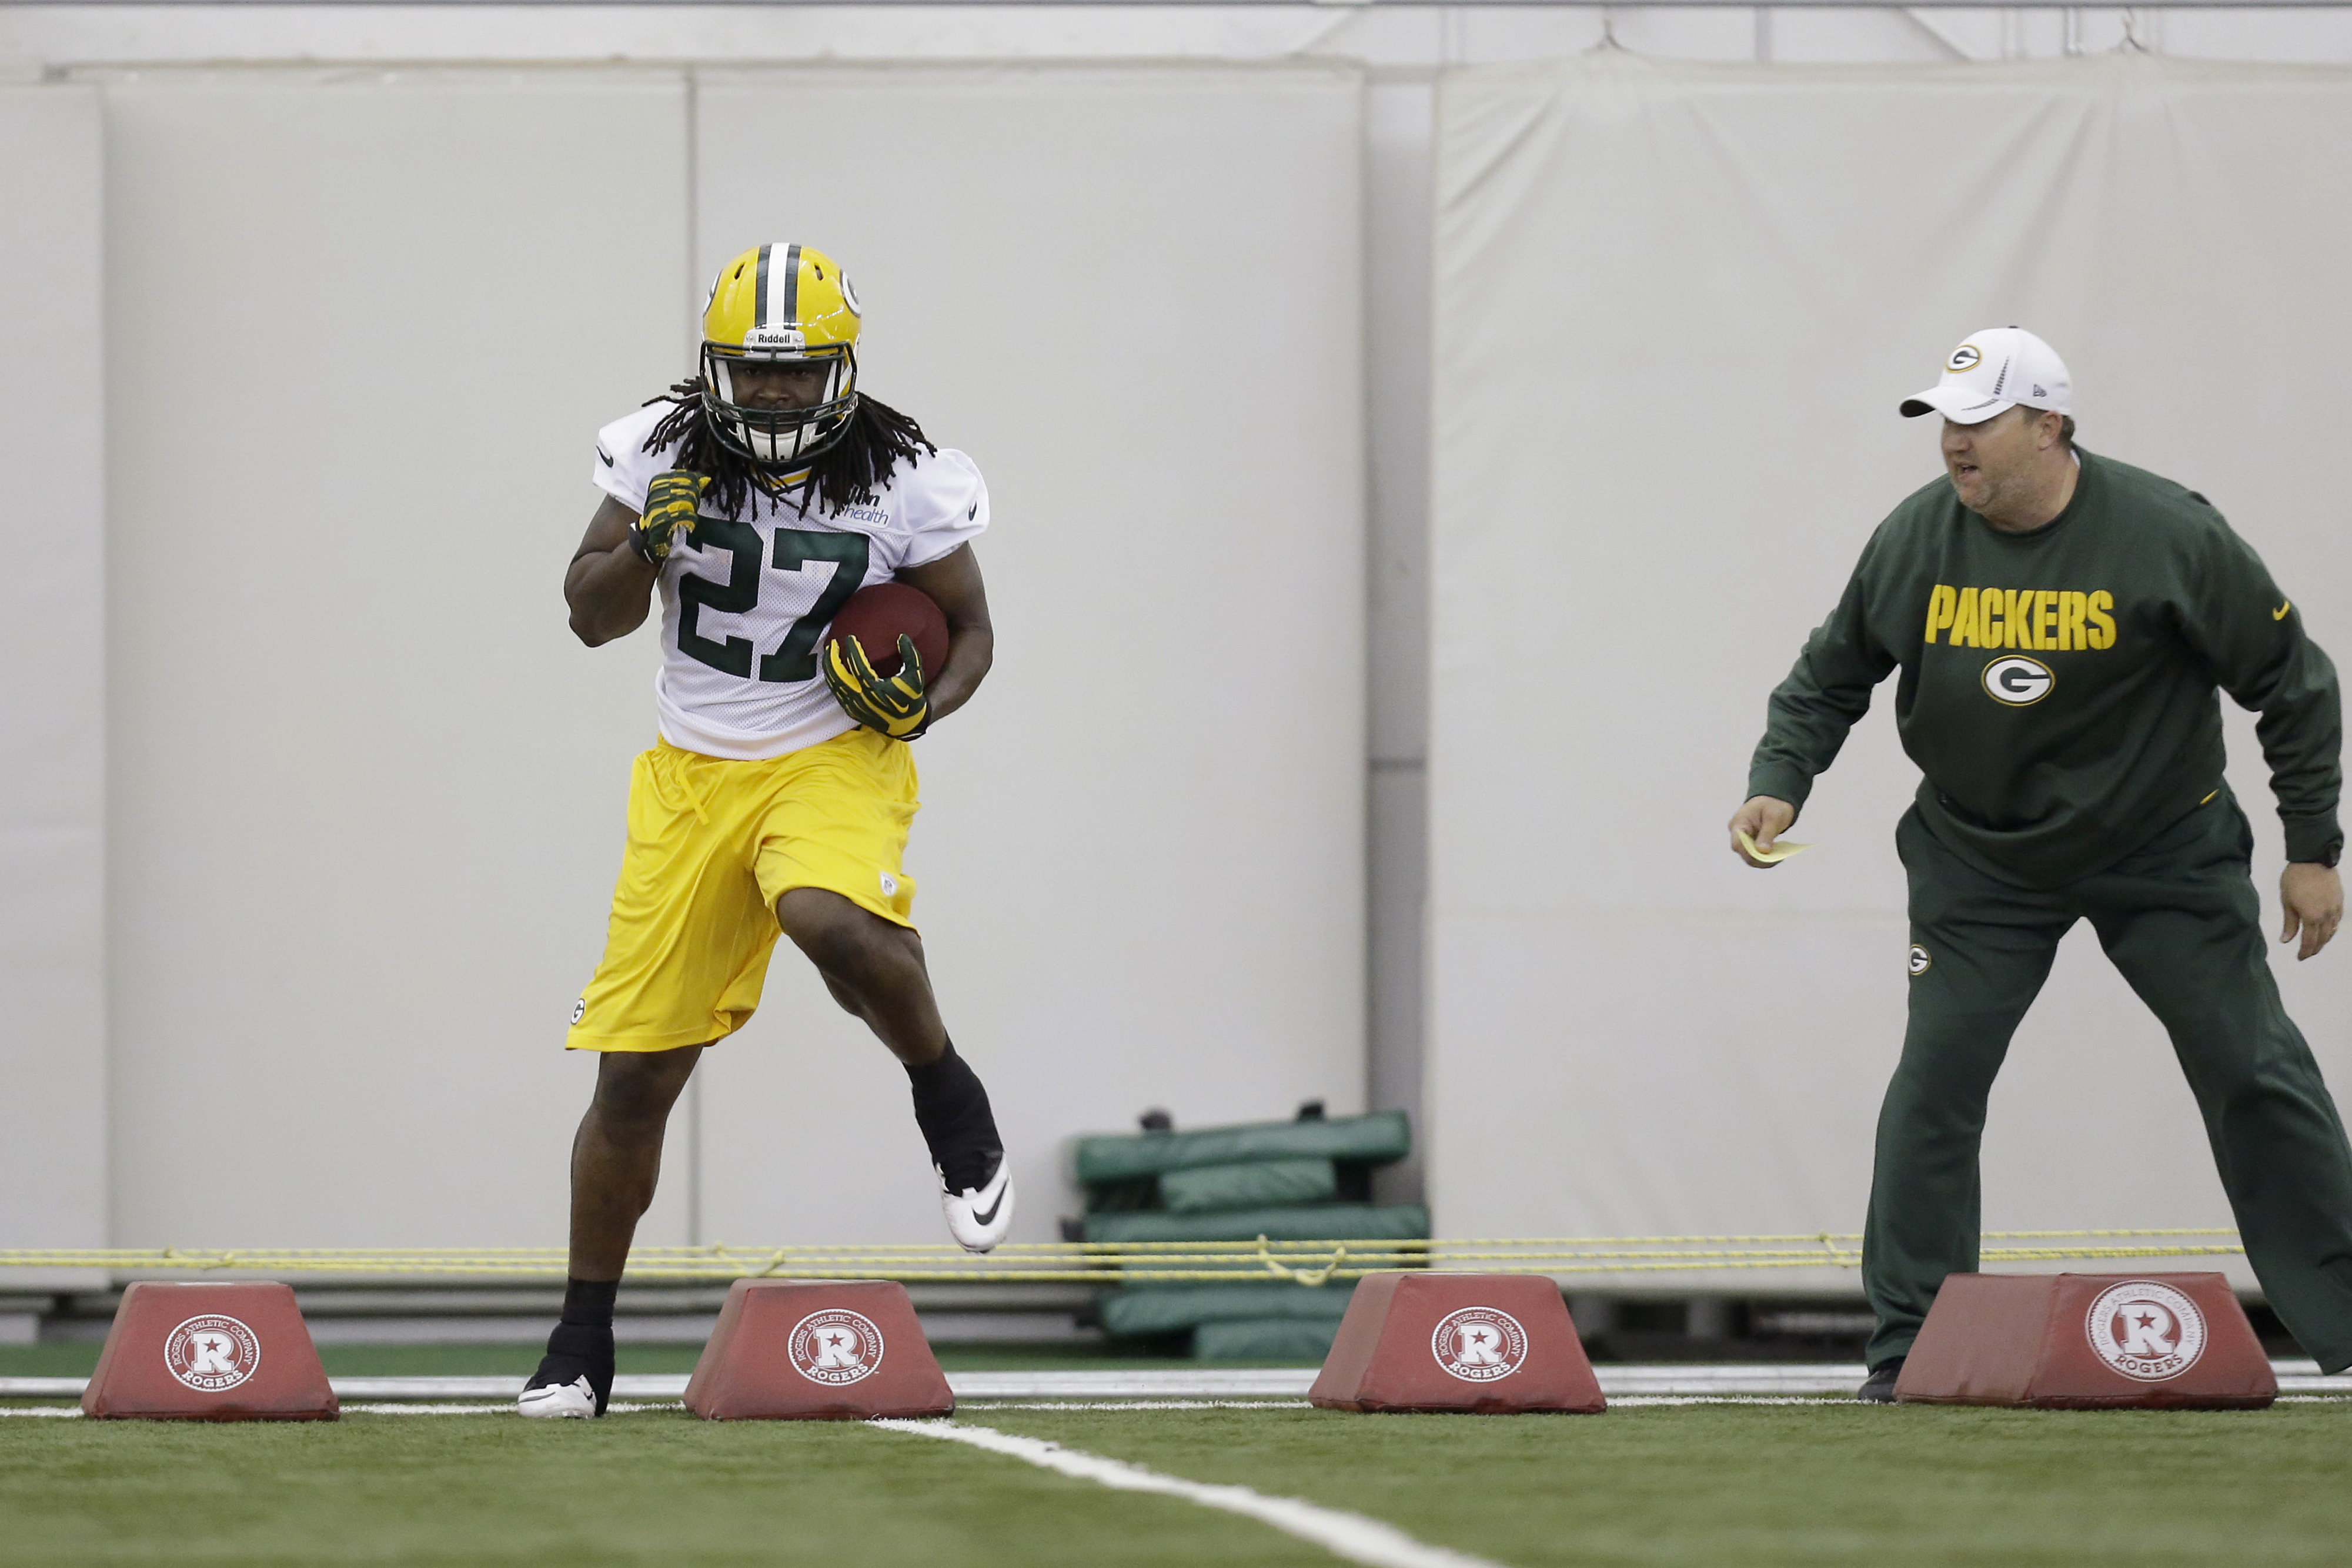 Eddie Lacy a 'concern' for preseason opener, Packers head coach says